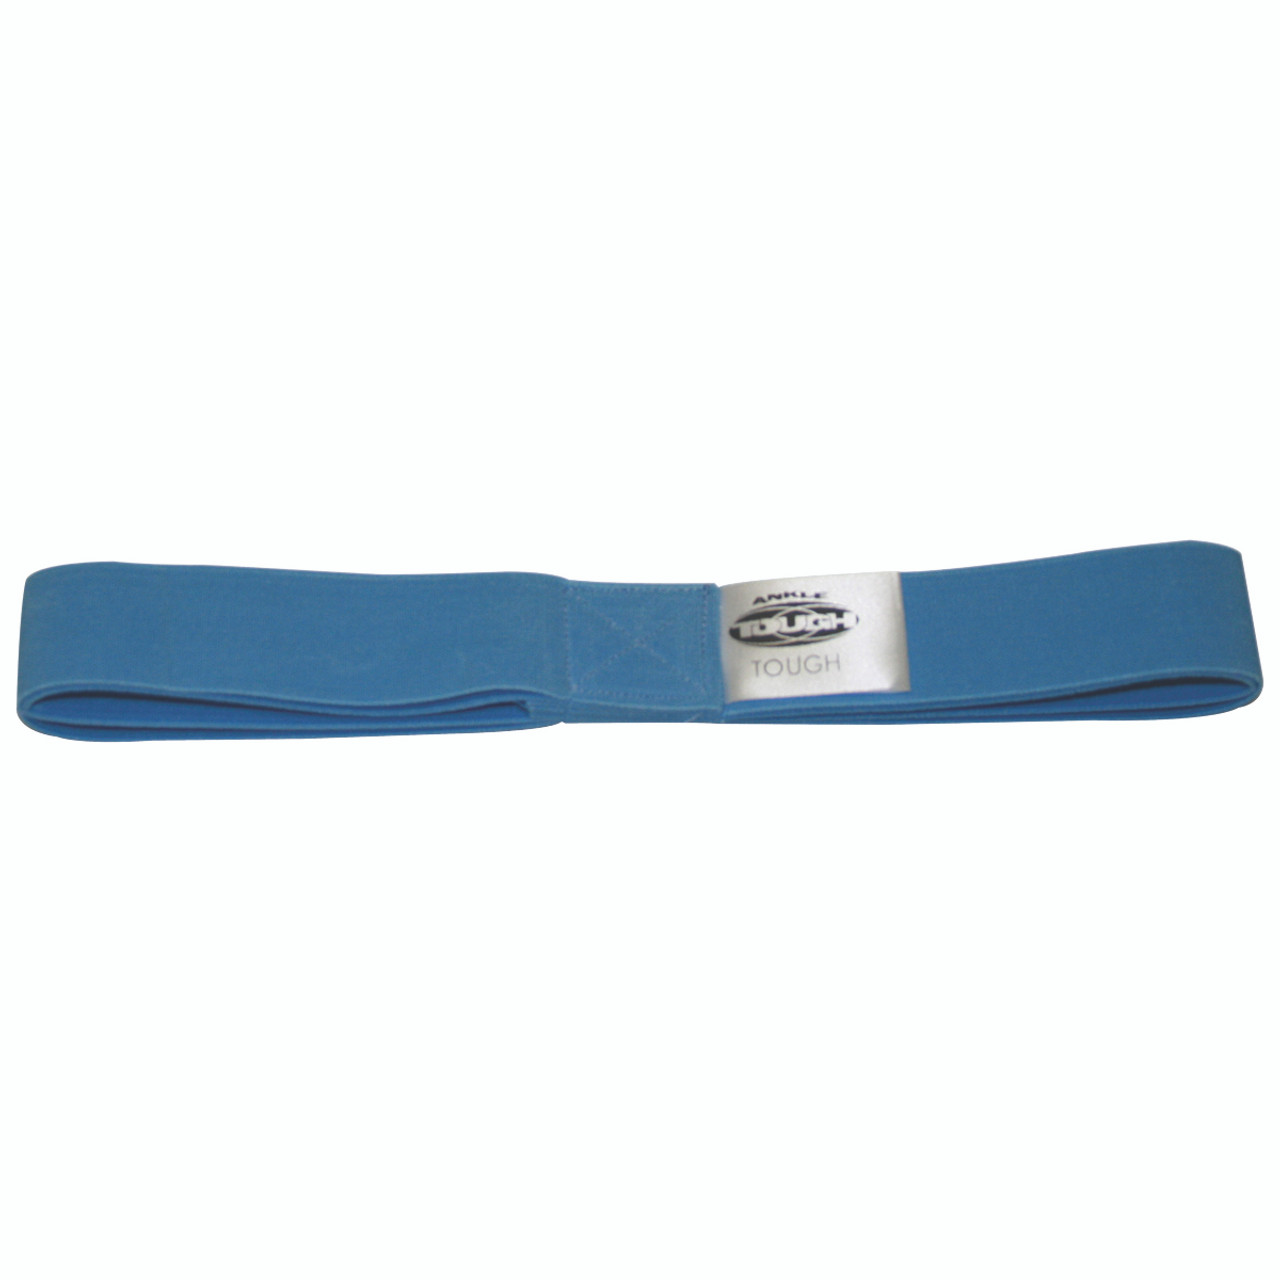 AnkleToughª Ankle Exercise Strap - Blue, heavy, package of 8